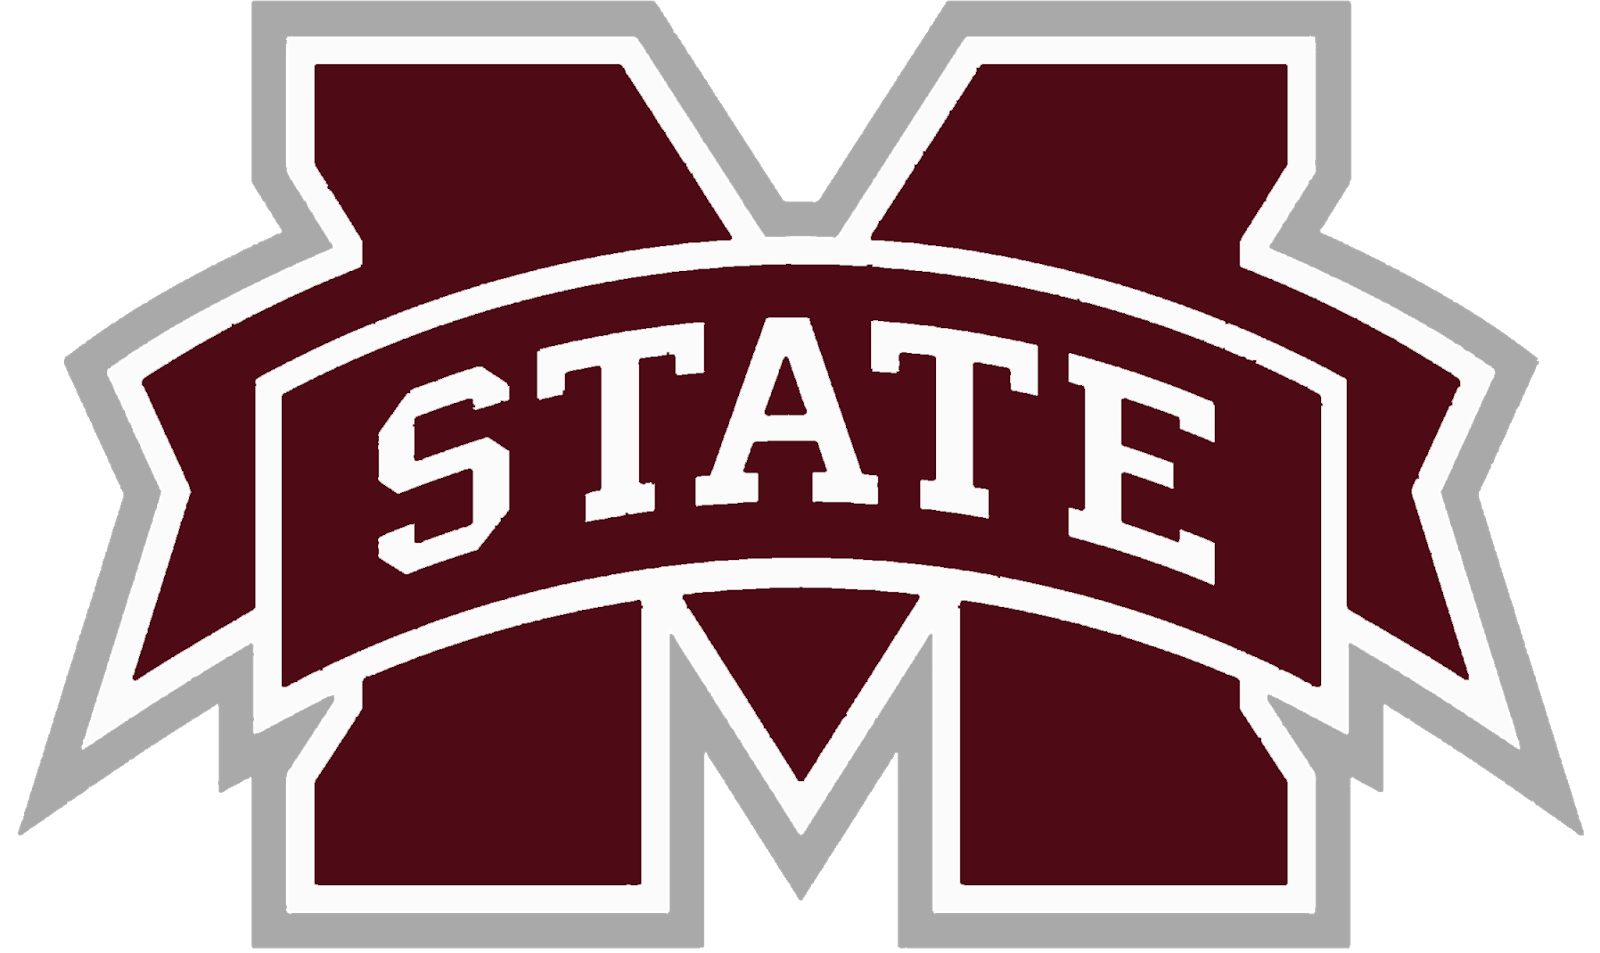 College football clipart svg download The Mississippi State Bulldogs vs. the Ole Miss Rebels - ScoreStream svg download